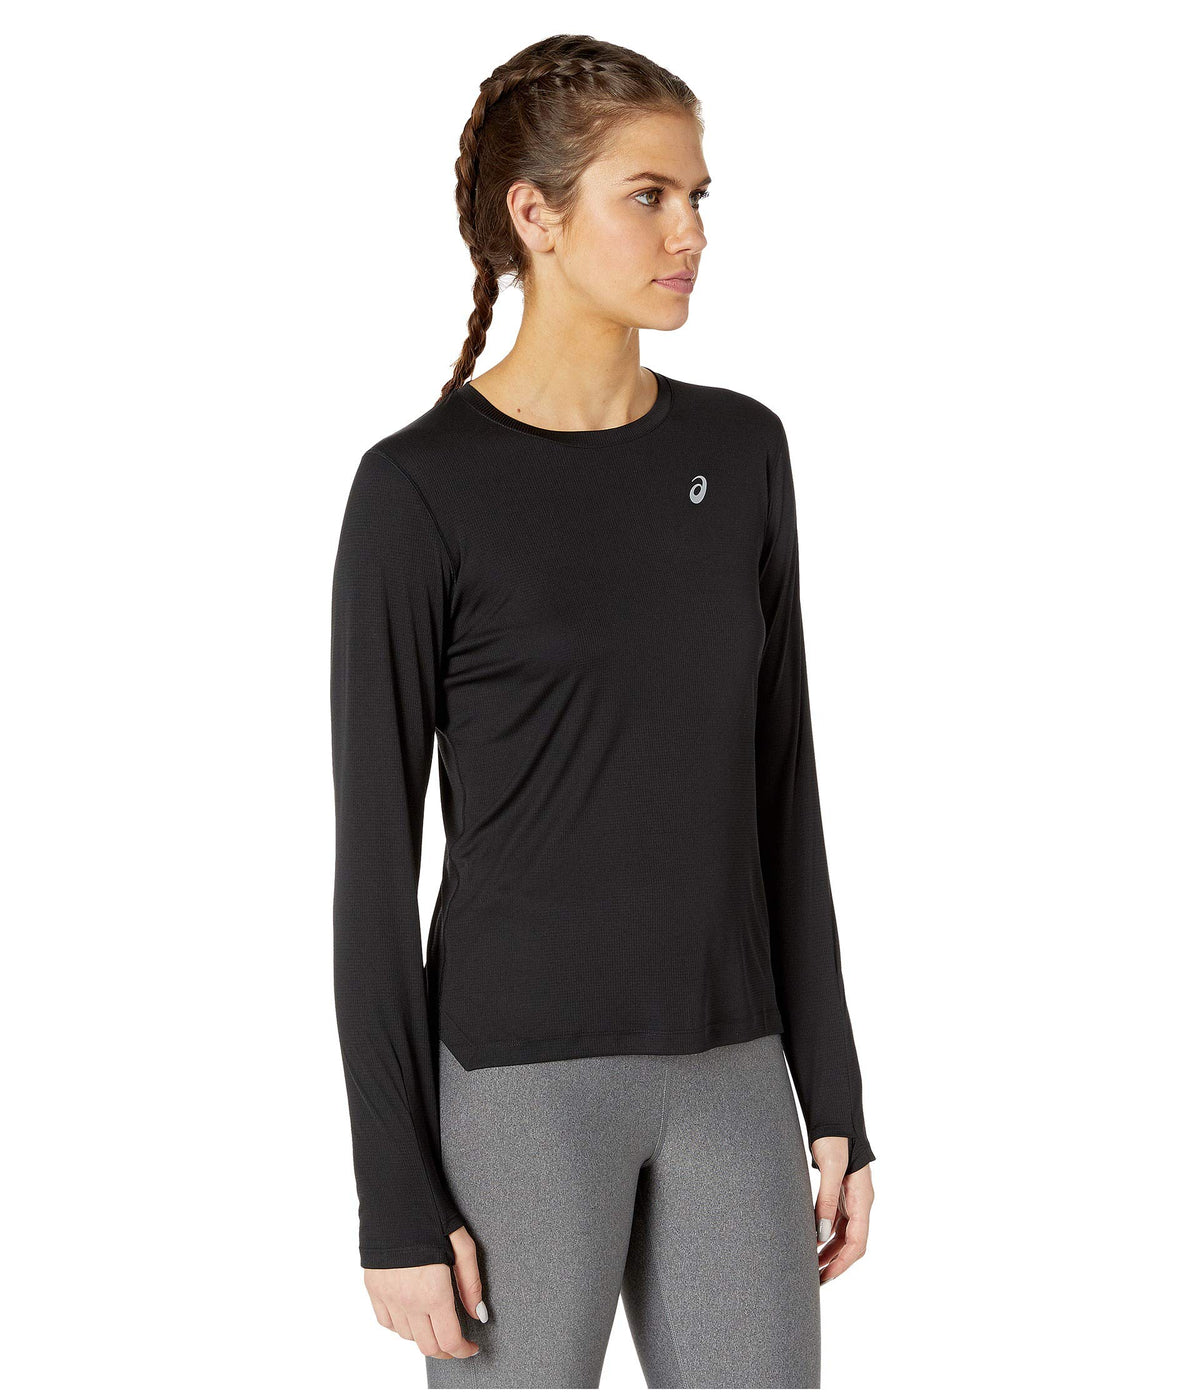 Run Silver Long Sleeve Top